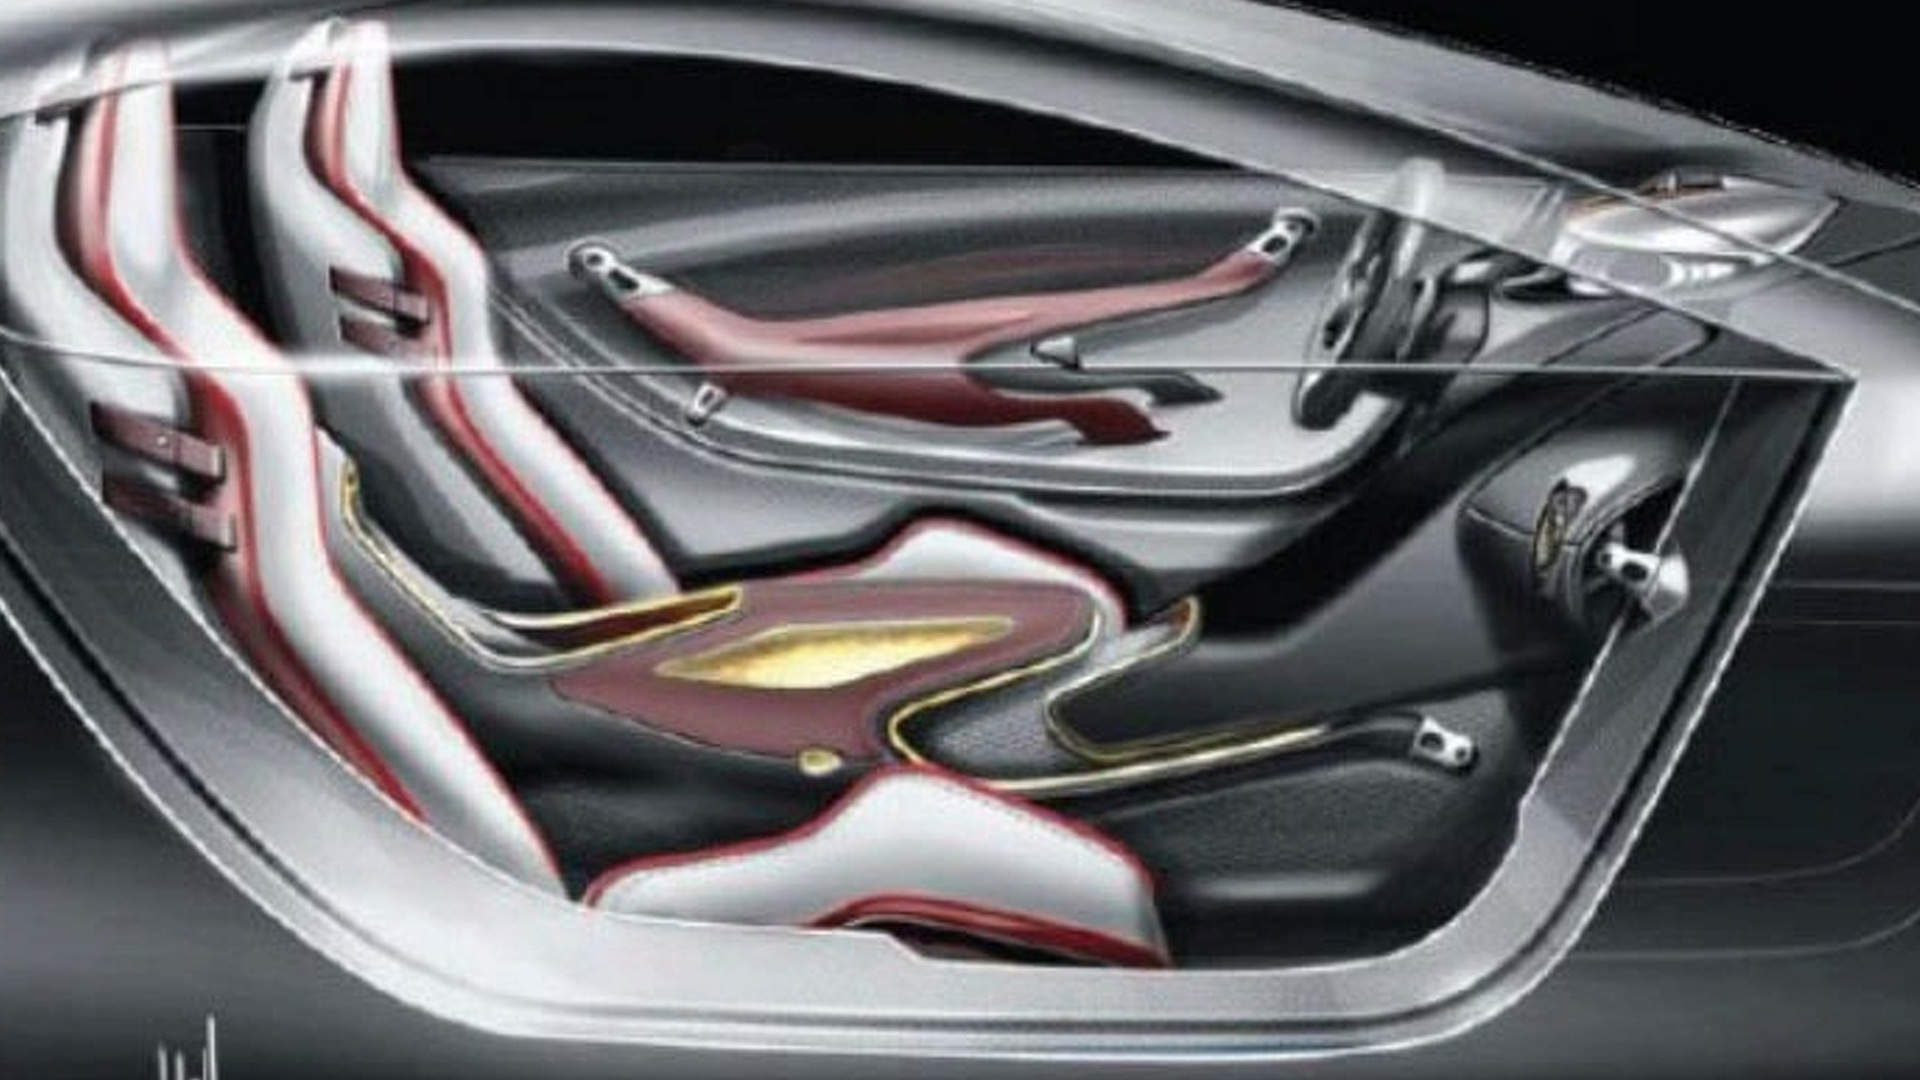 Aston Martin One-77 Internal Product Brief Leaked - Design process detailed